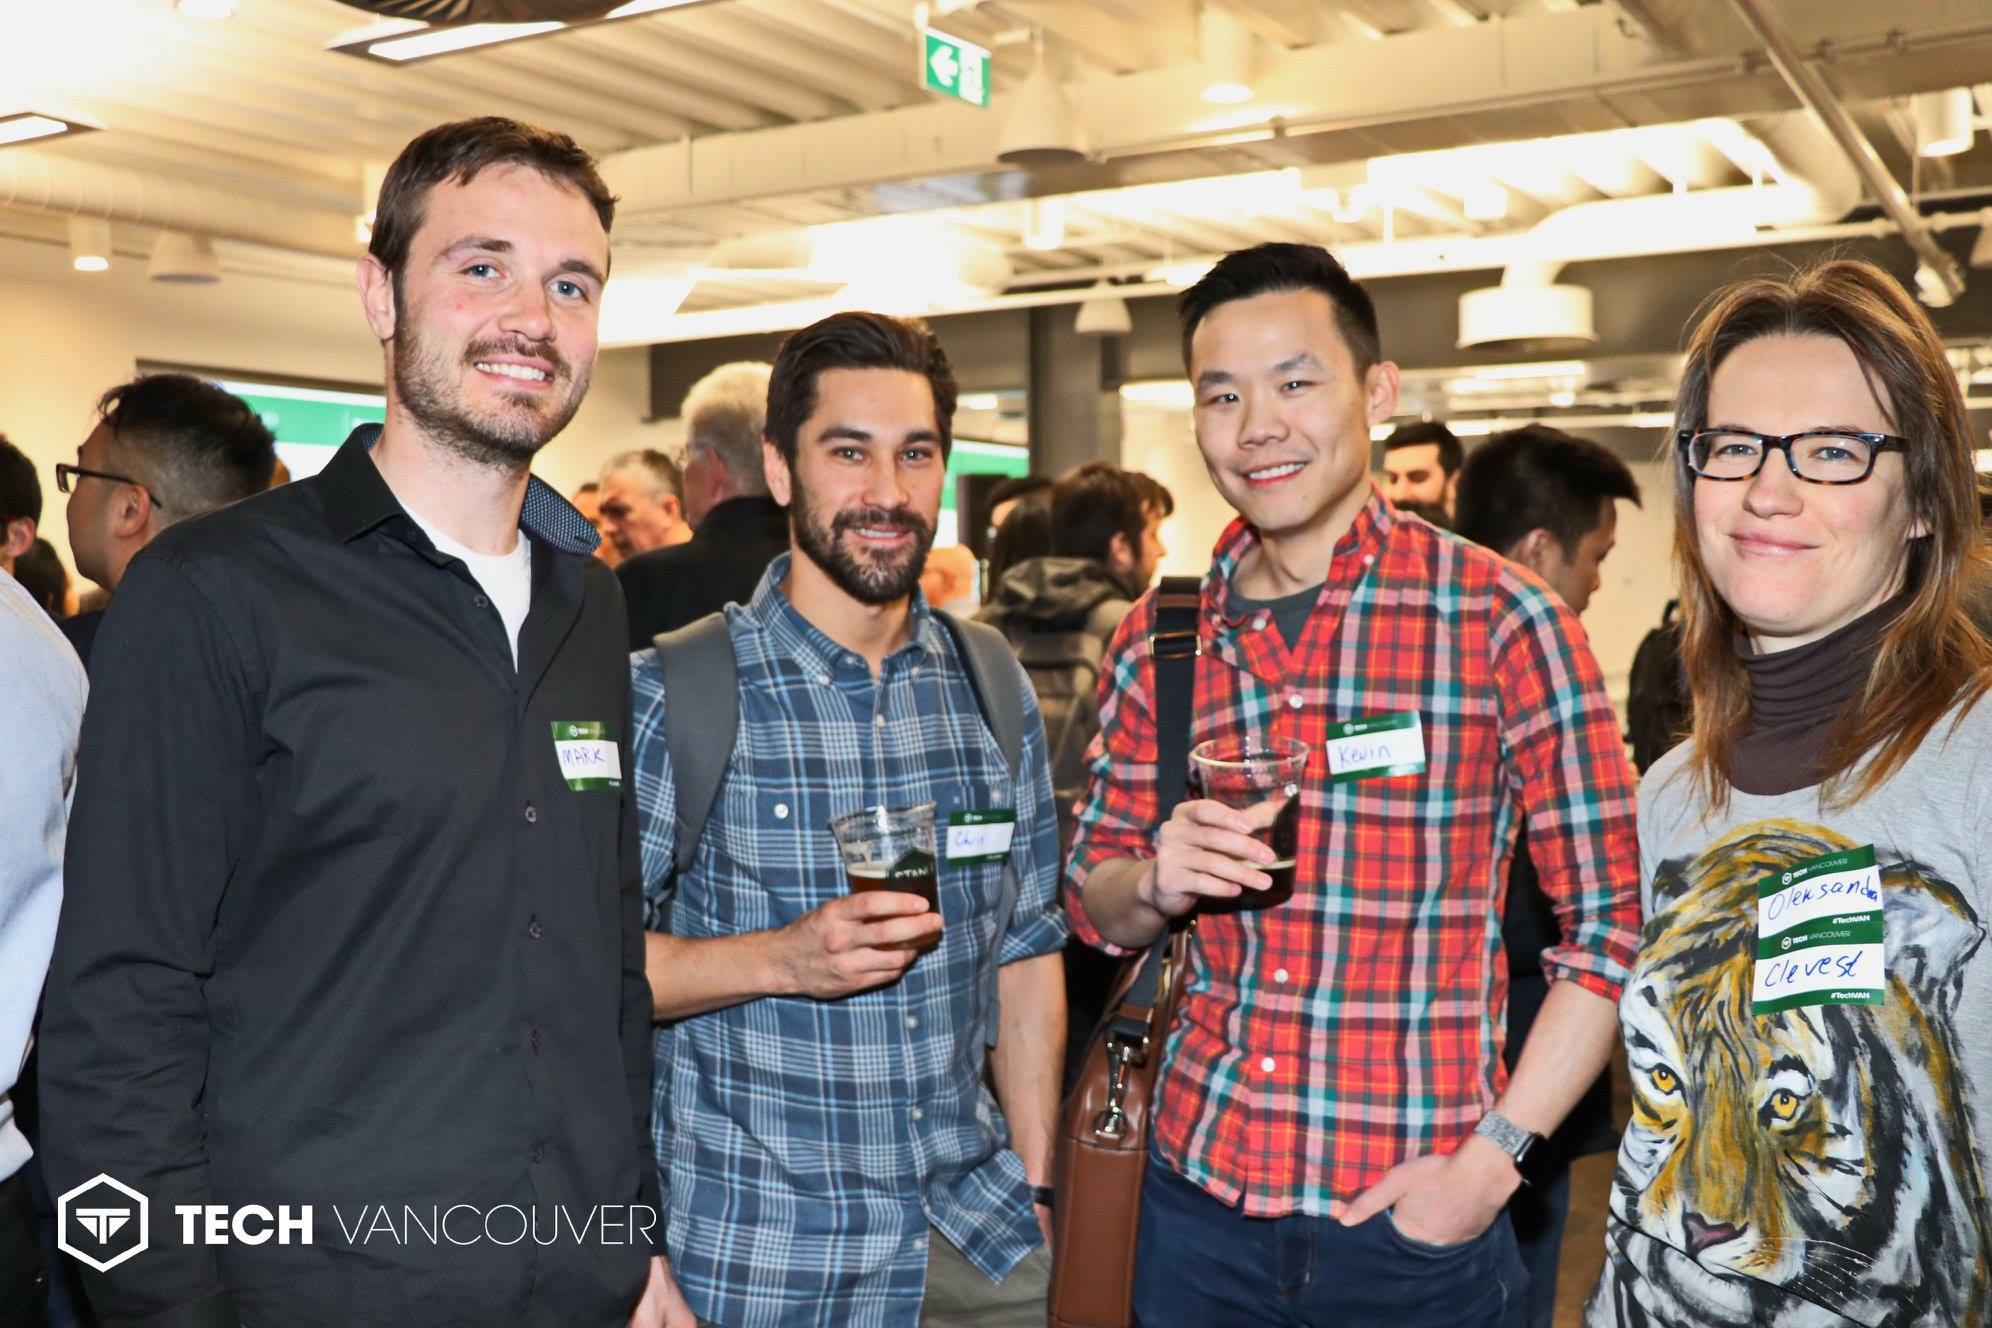 Here are 8 best tech networking events in Vancouver